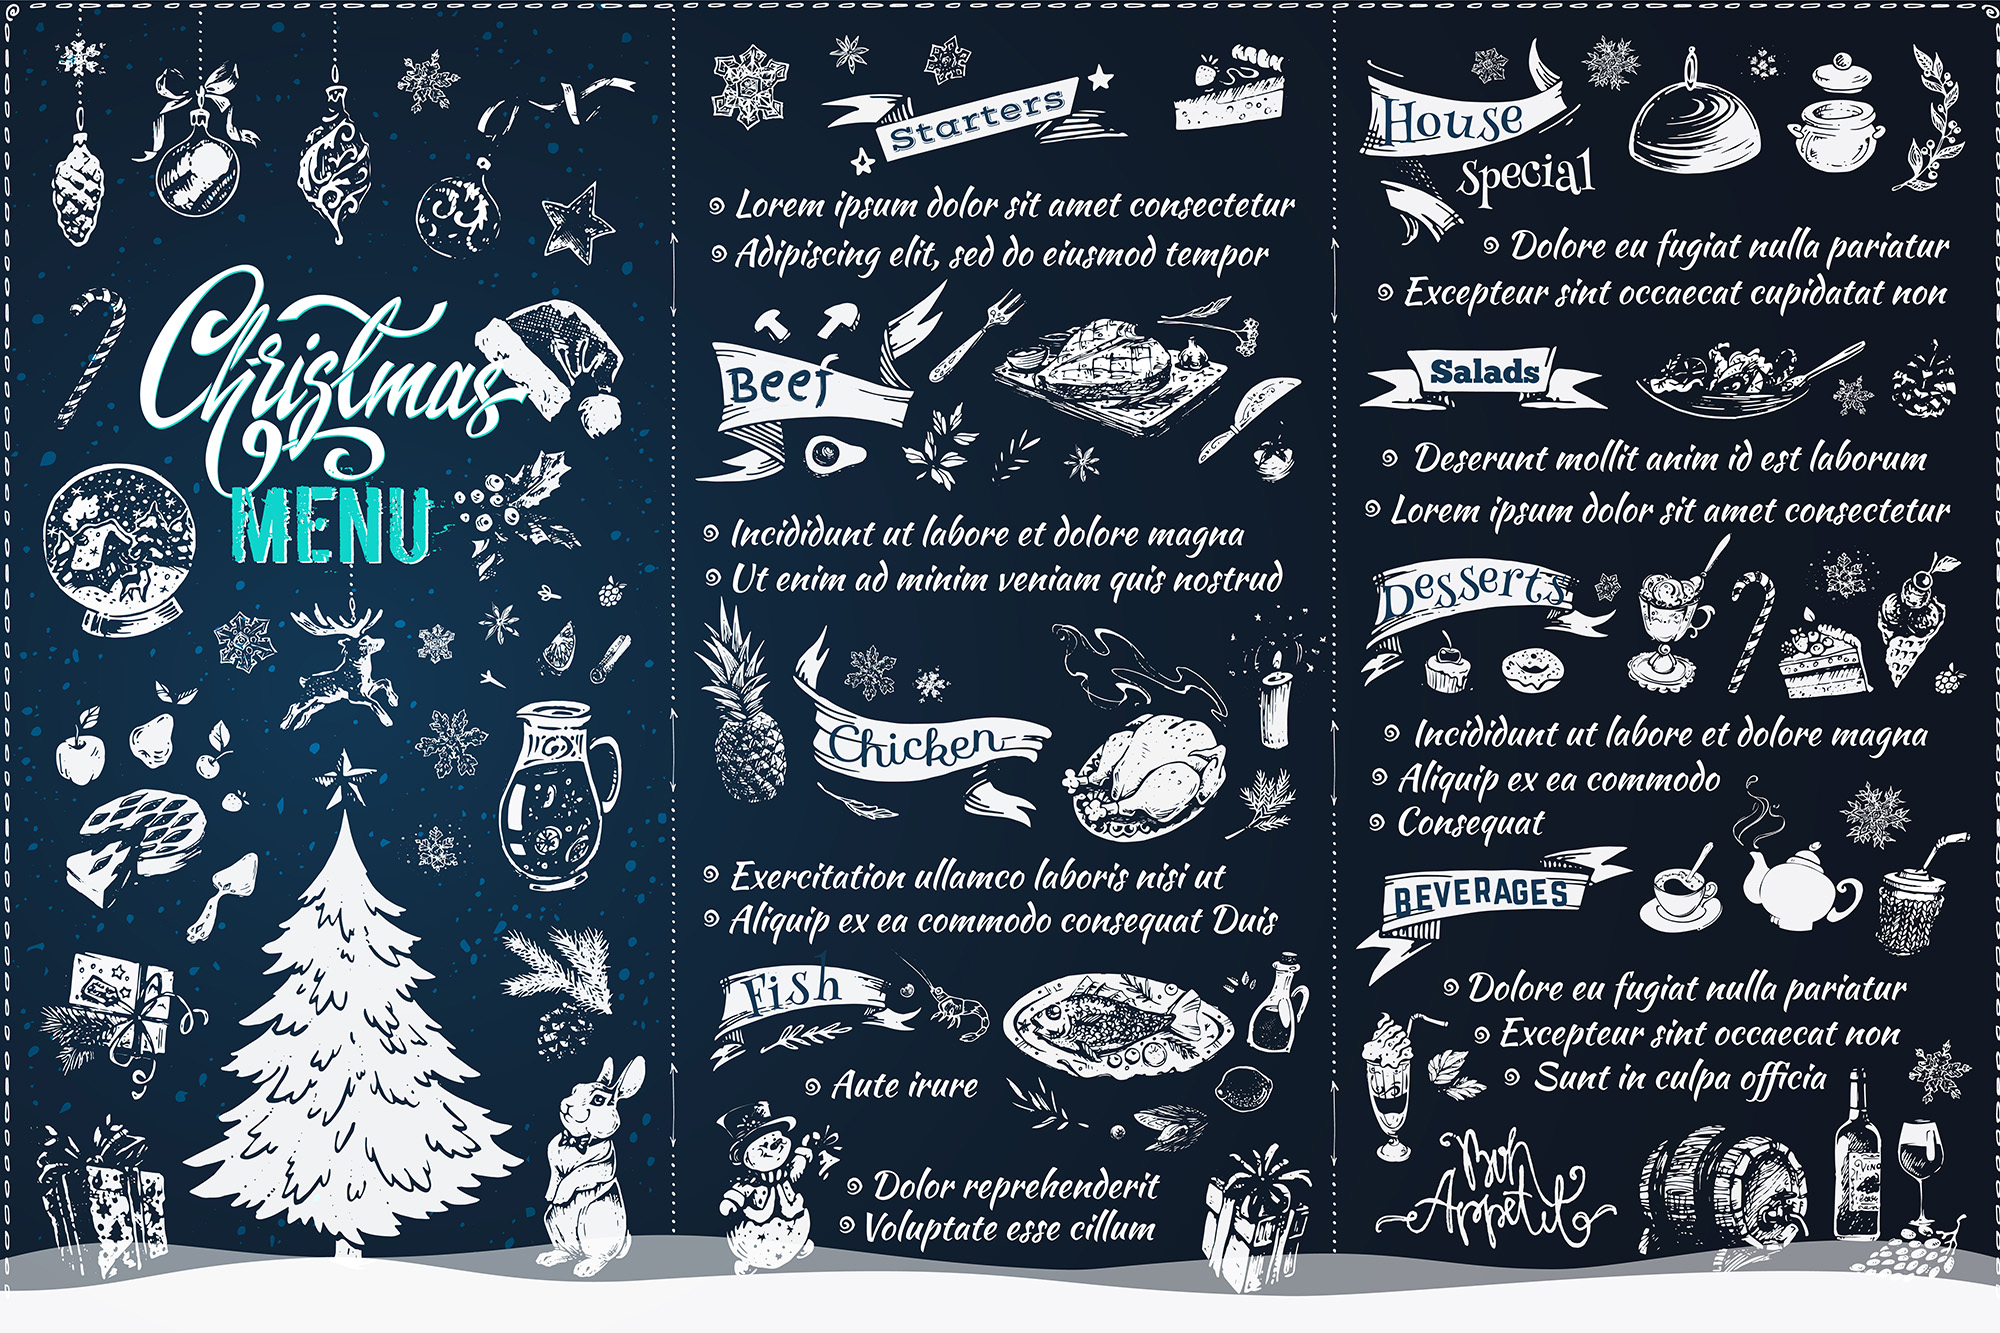 Christmas Menu Design. Hand Drawn Illustrations example image 8